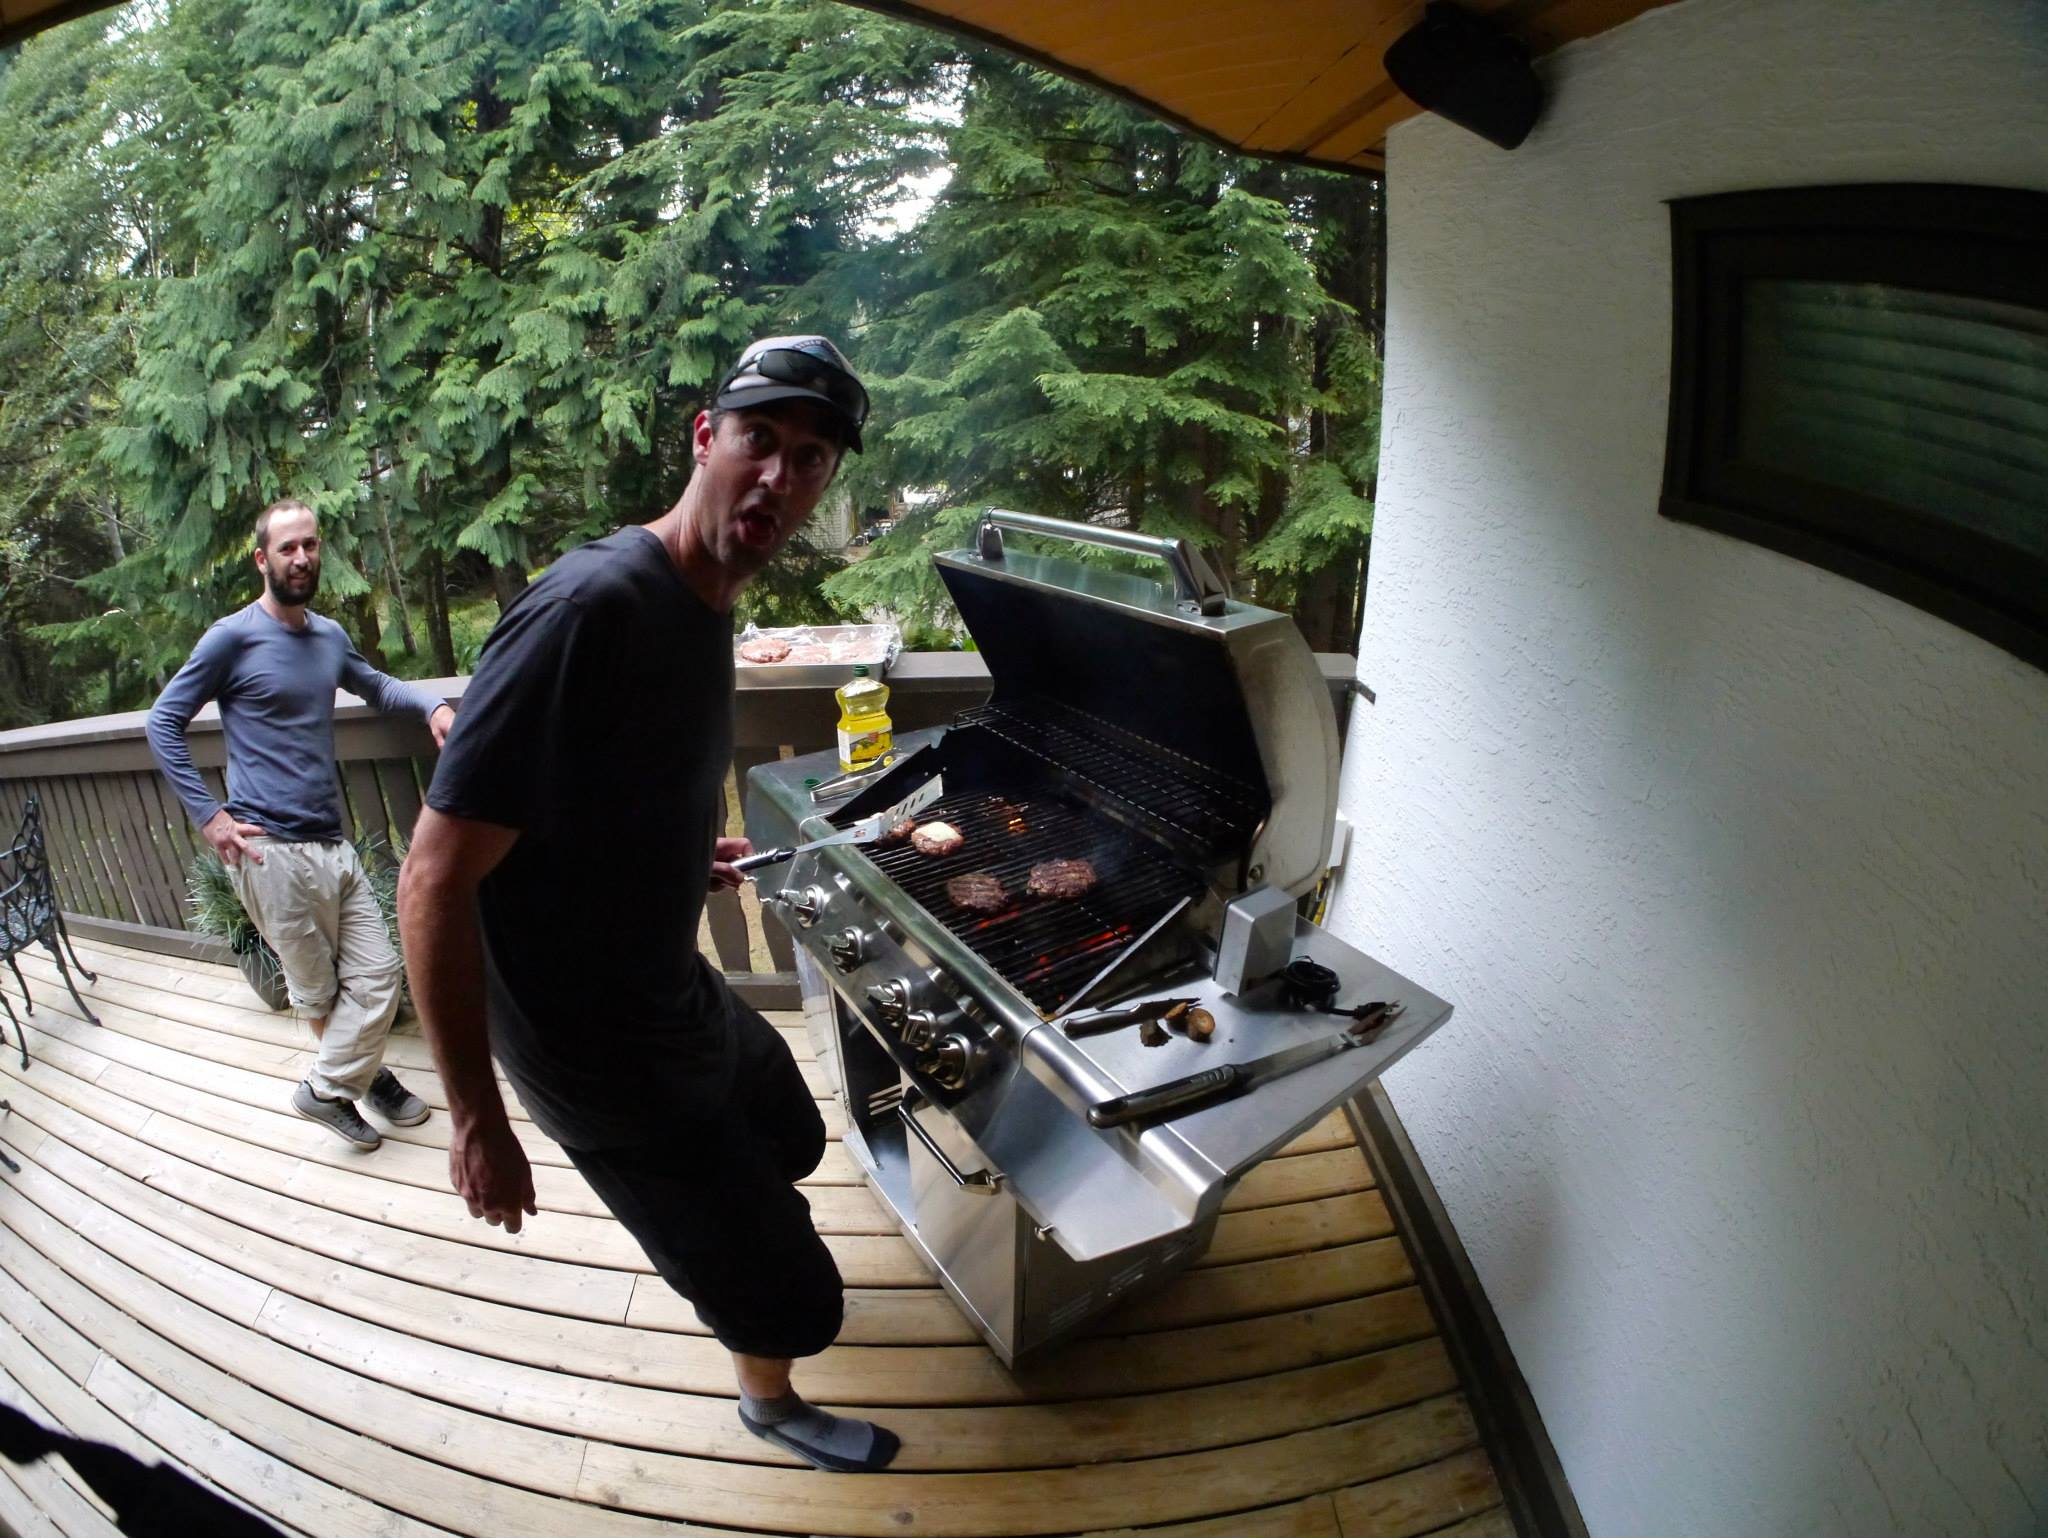 Dahj fires up some burgers for the Coaches Camp meet and greet